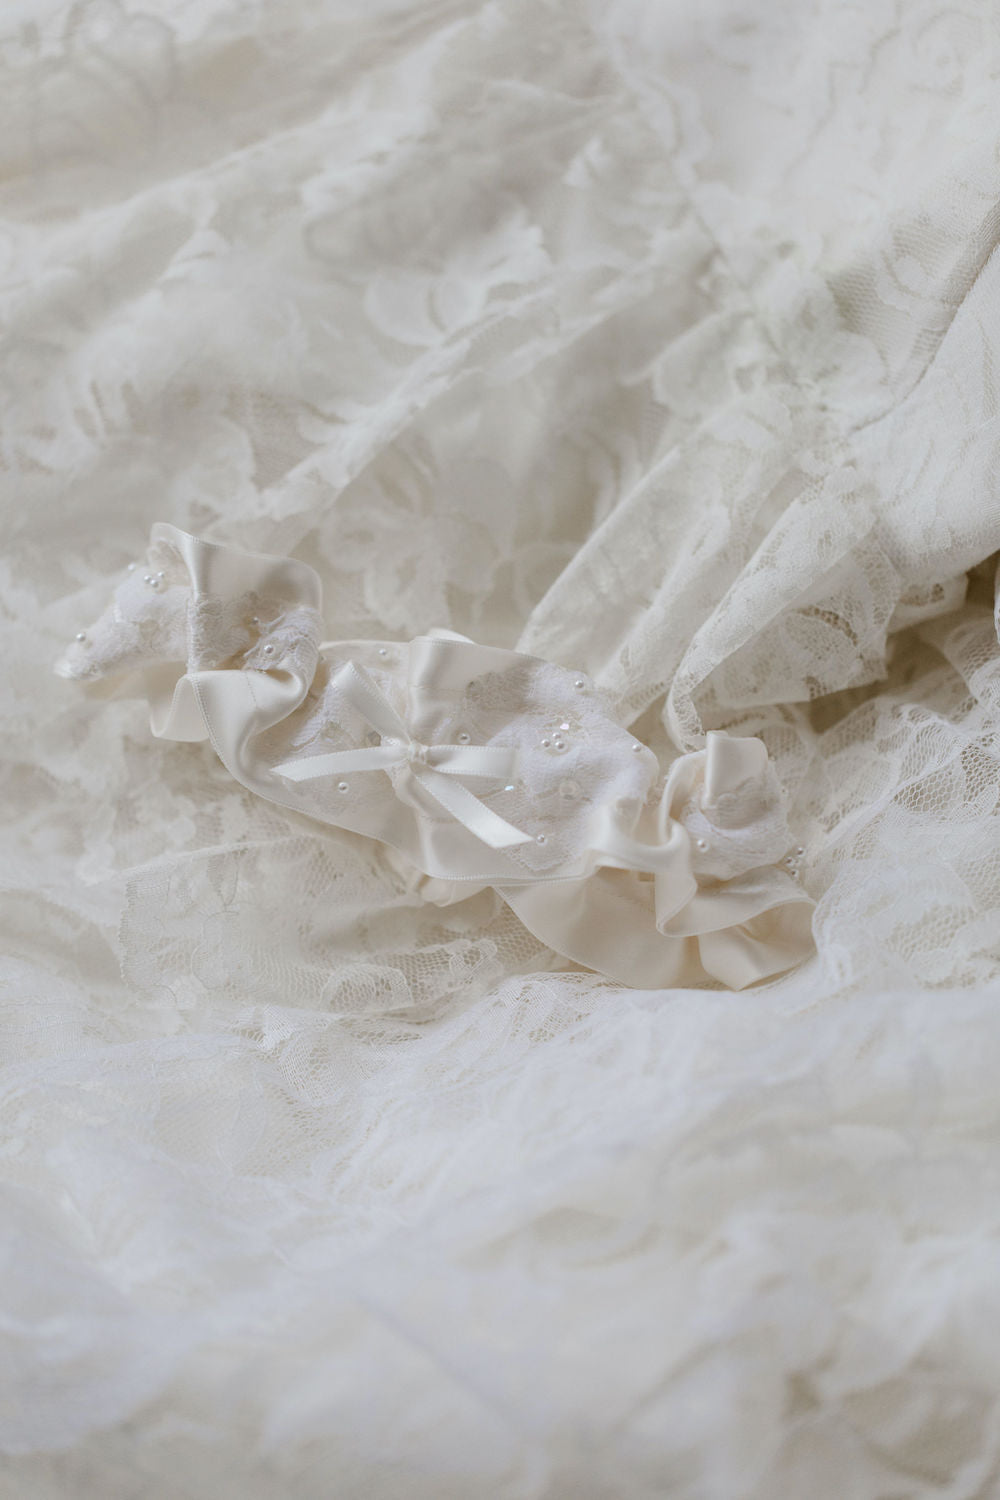 wedding garter handmade with lace and pearls from the collar of the mother's wedding dress by The Garter Girl